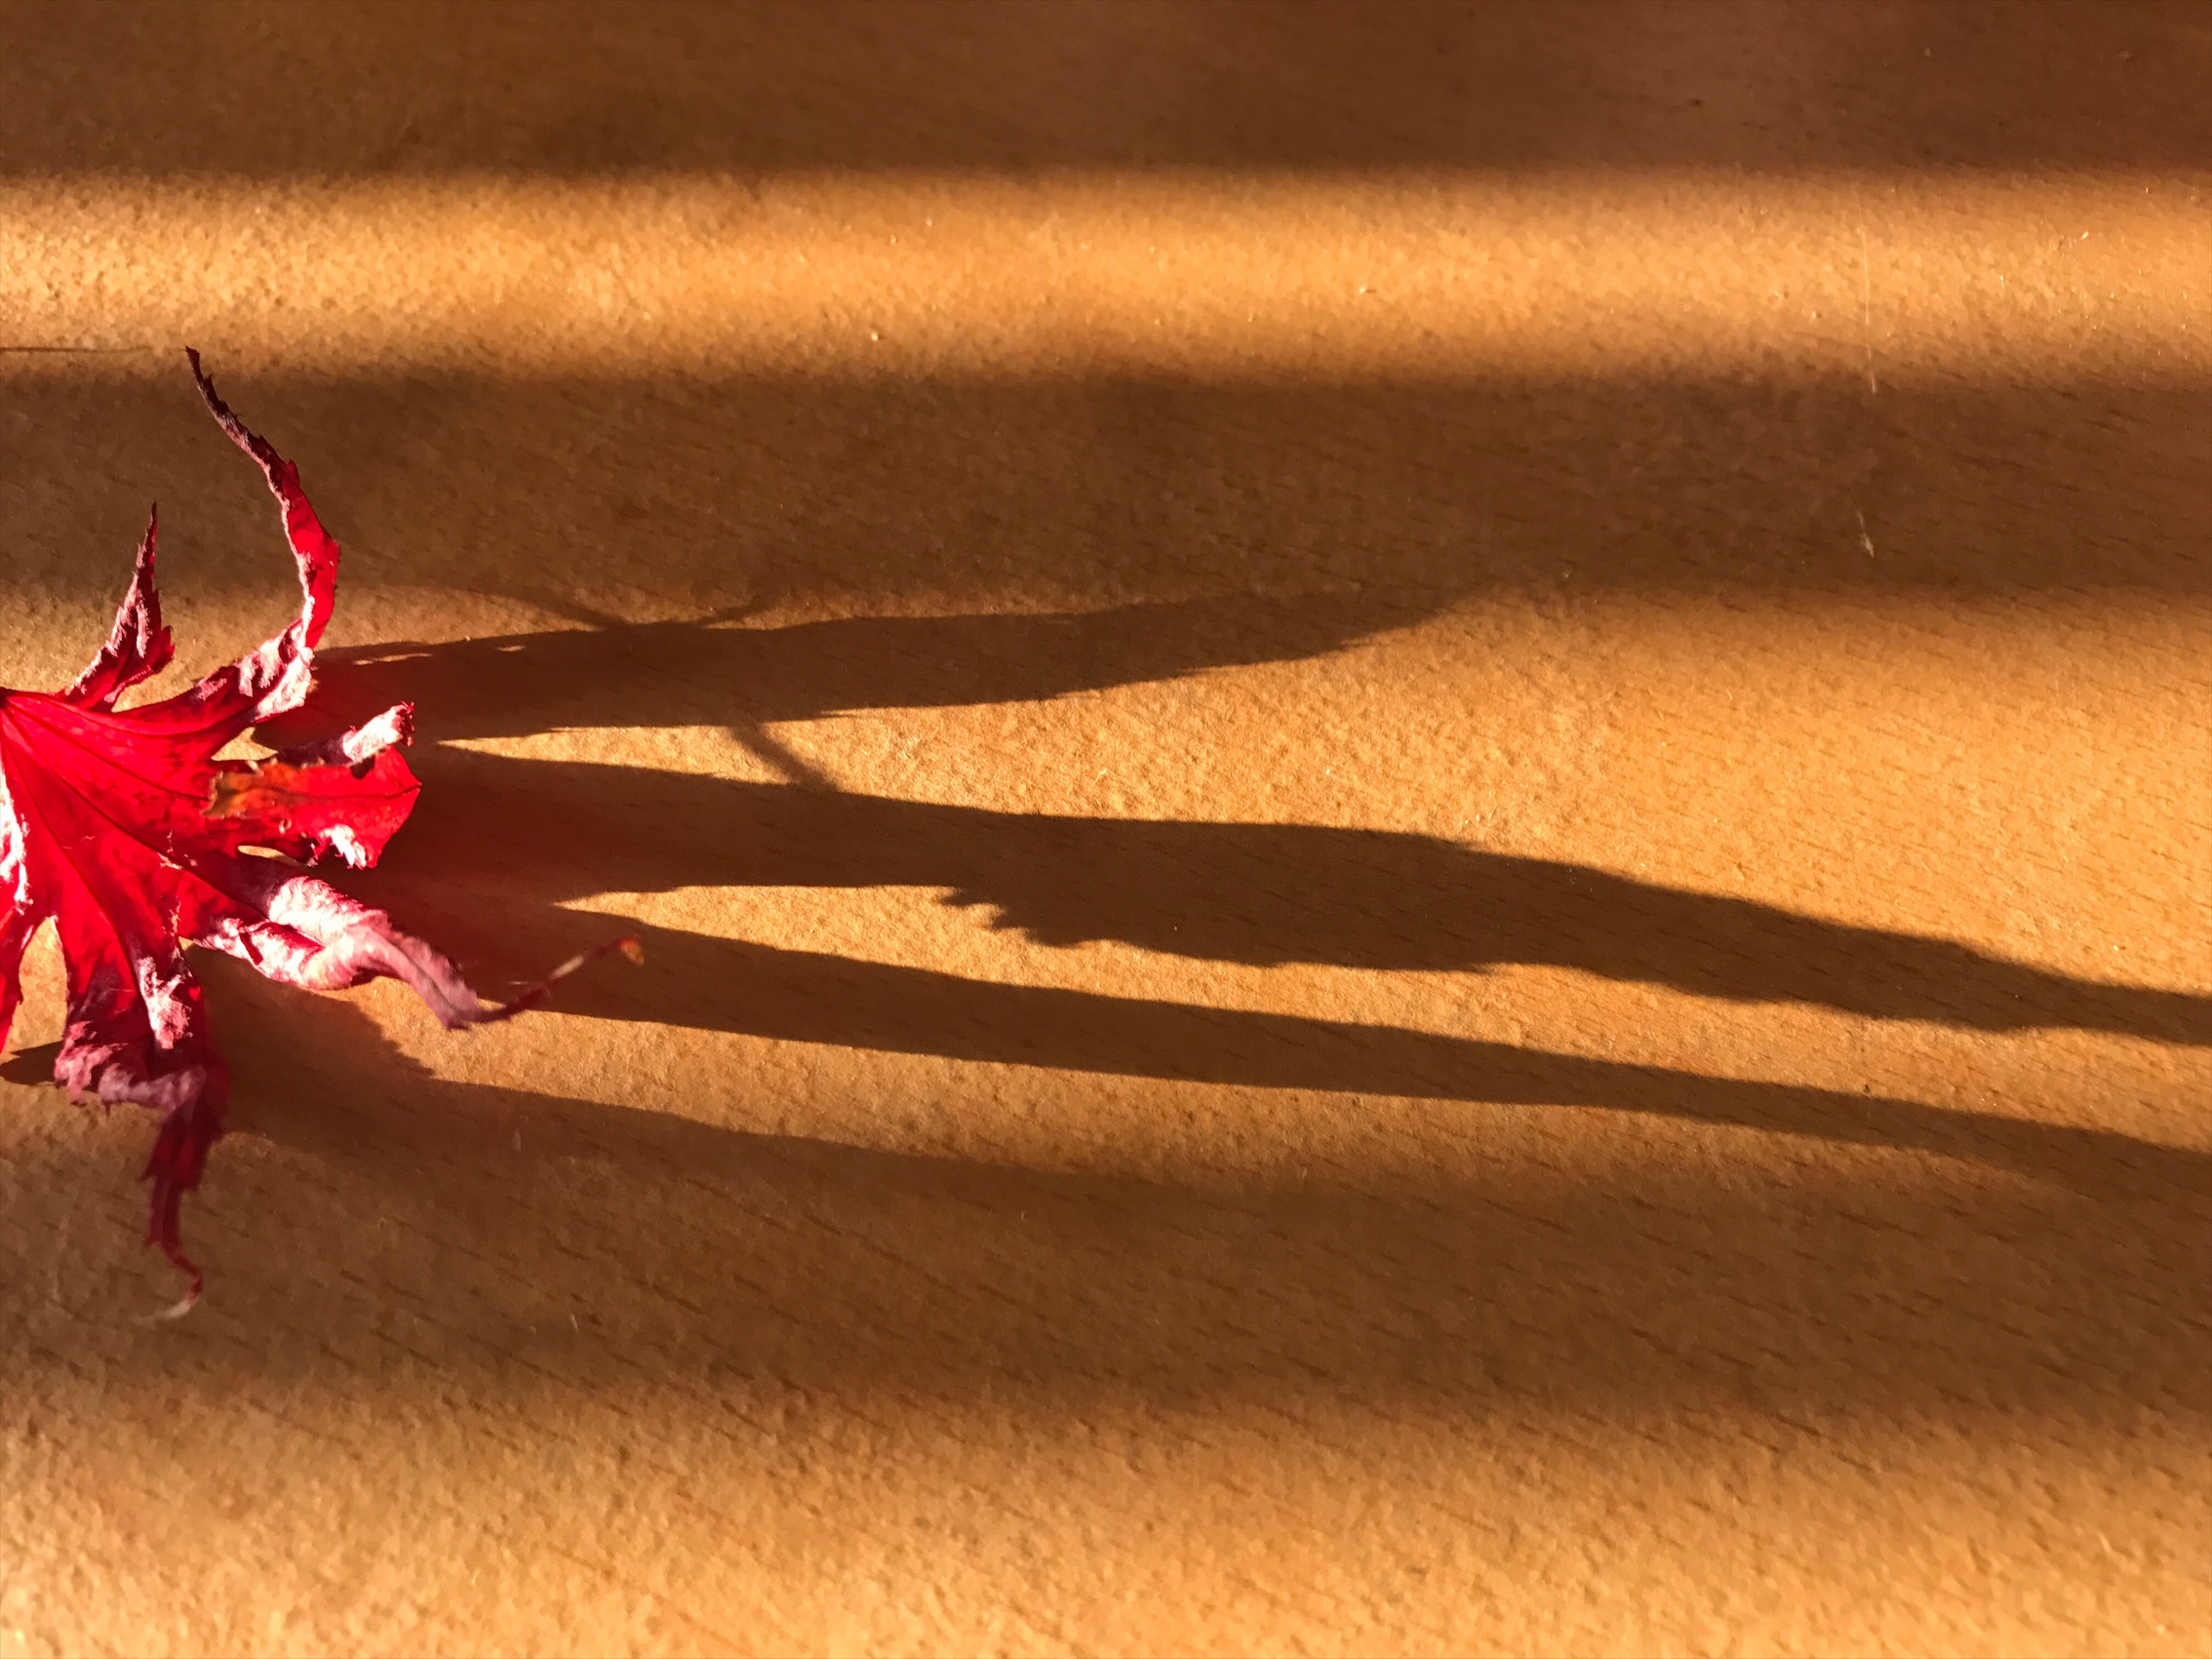 Japanese maple leaf casting shadow in the afternoon sun